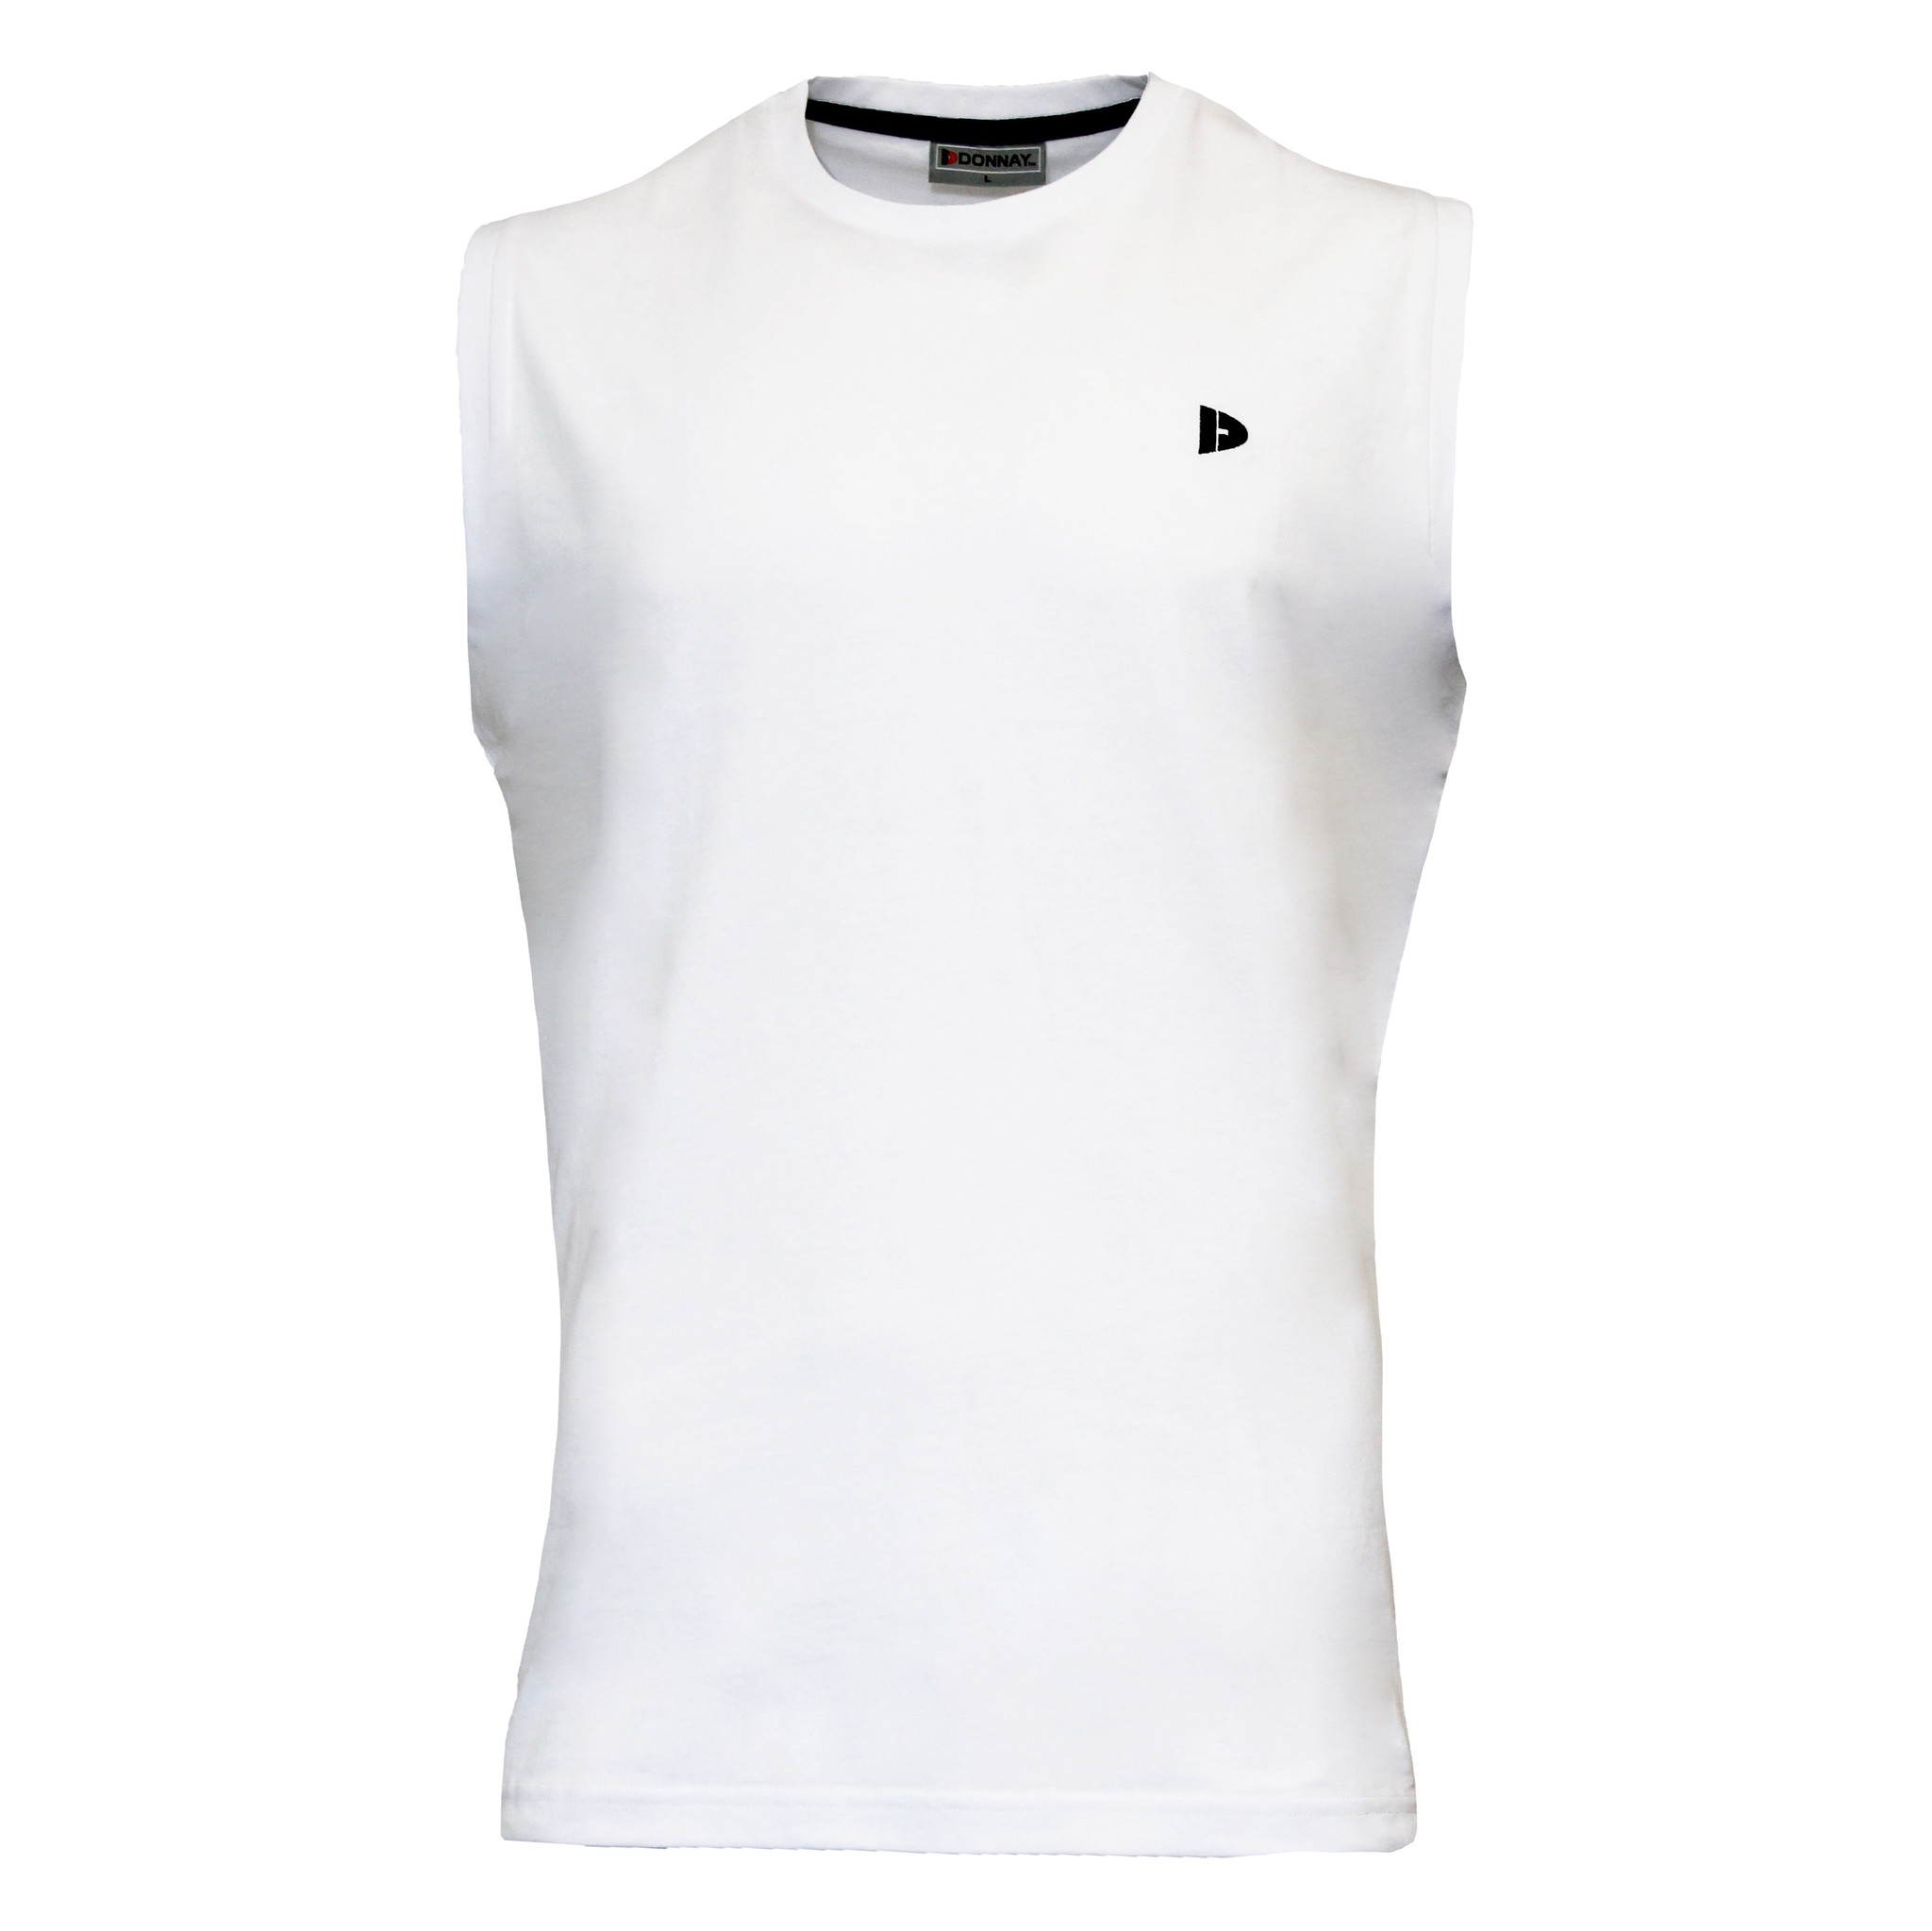 Donnay Donnay Heren - Mouwloos T-shirt Stan - Wit